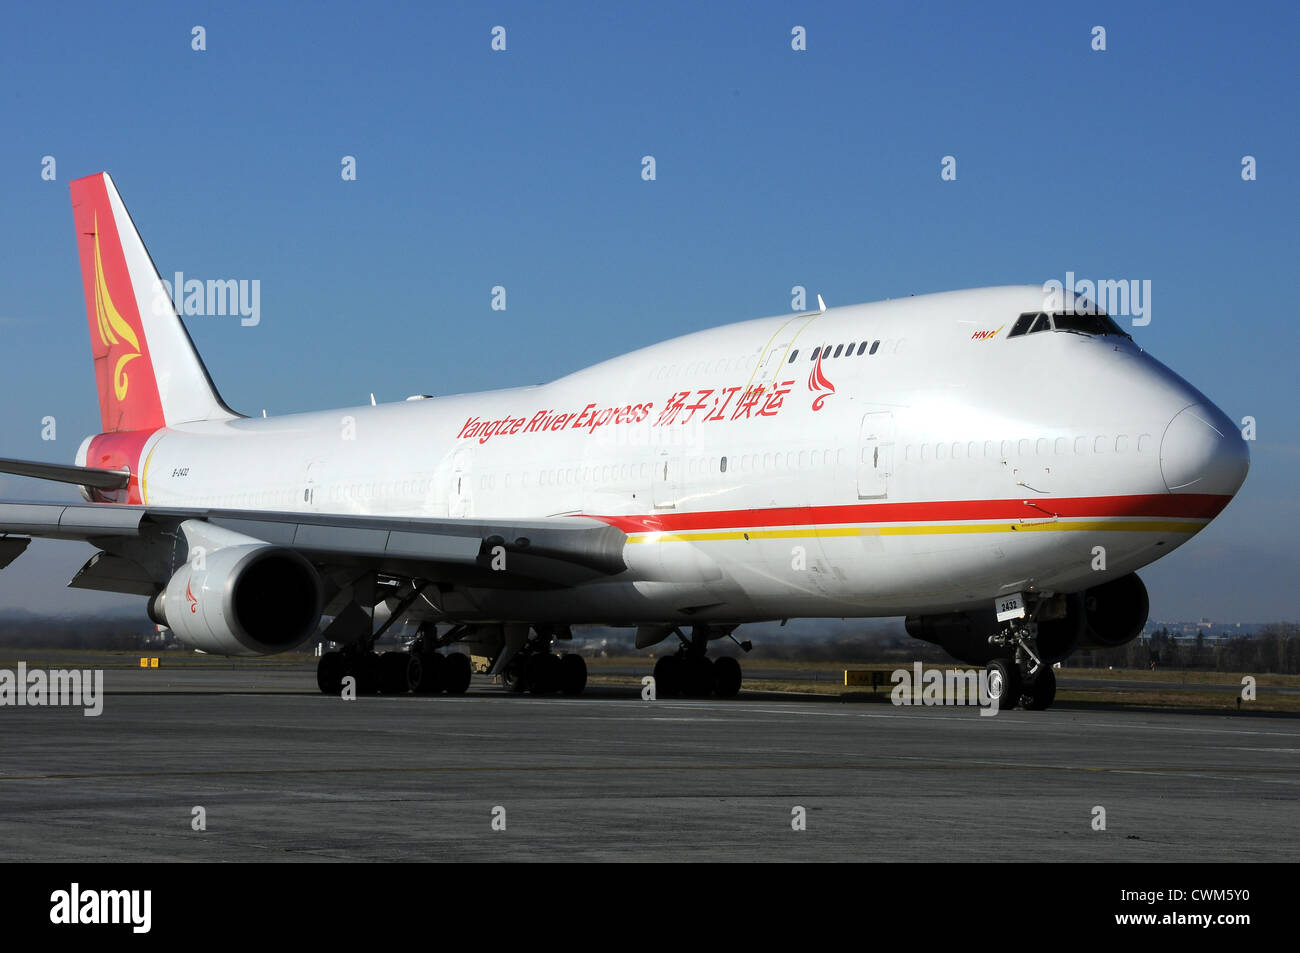 Boeing 747 - Cargo Version - Stock Image